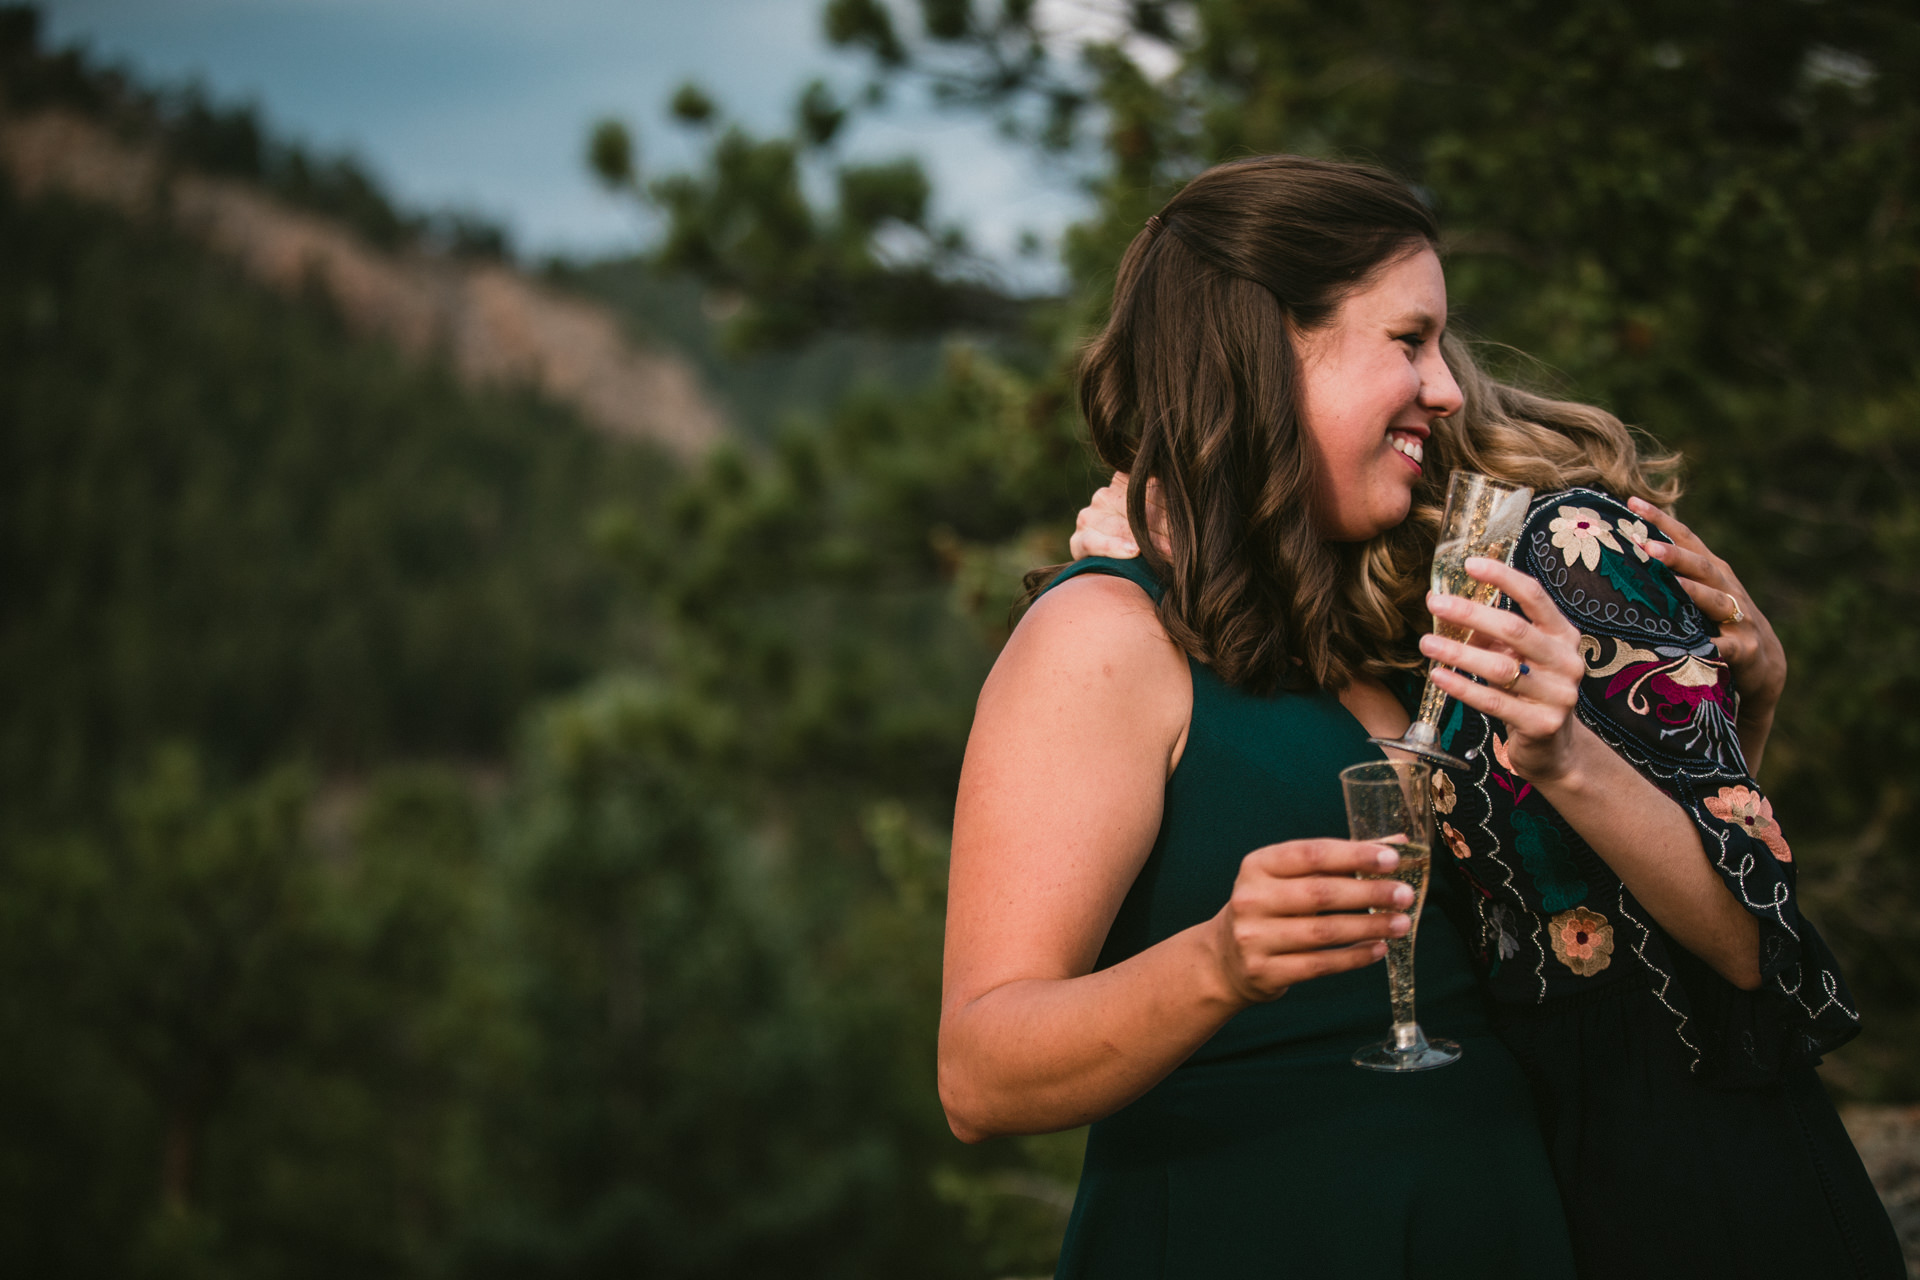 Staunton State Park Destination Wedding Photography | The couple was elated with tears and laughter